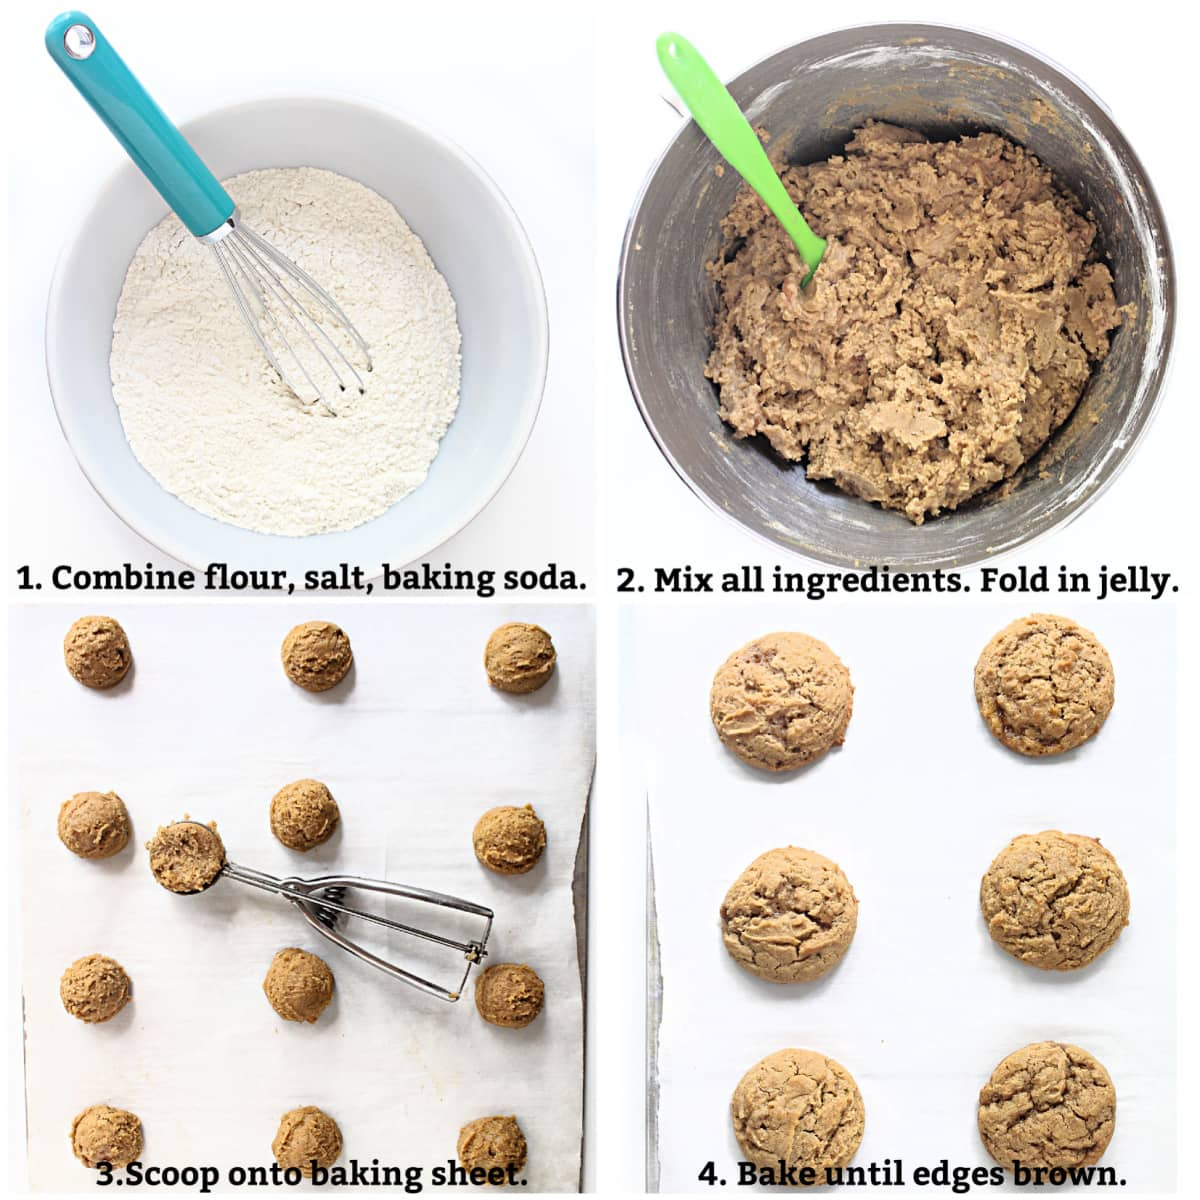 Cookie process collage; whisk dry ingredients, combine all ingredients, scoop dough balls, bake until edges brown.